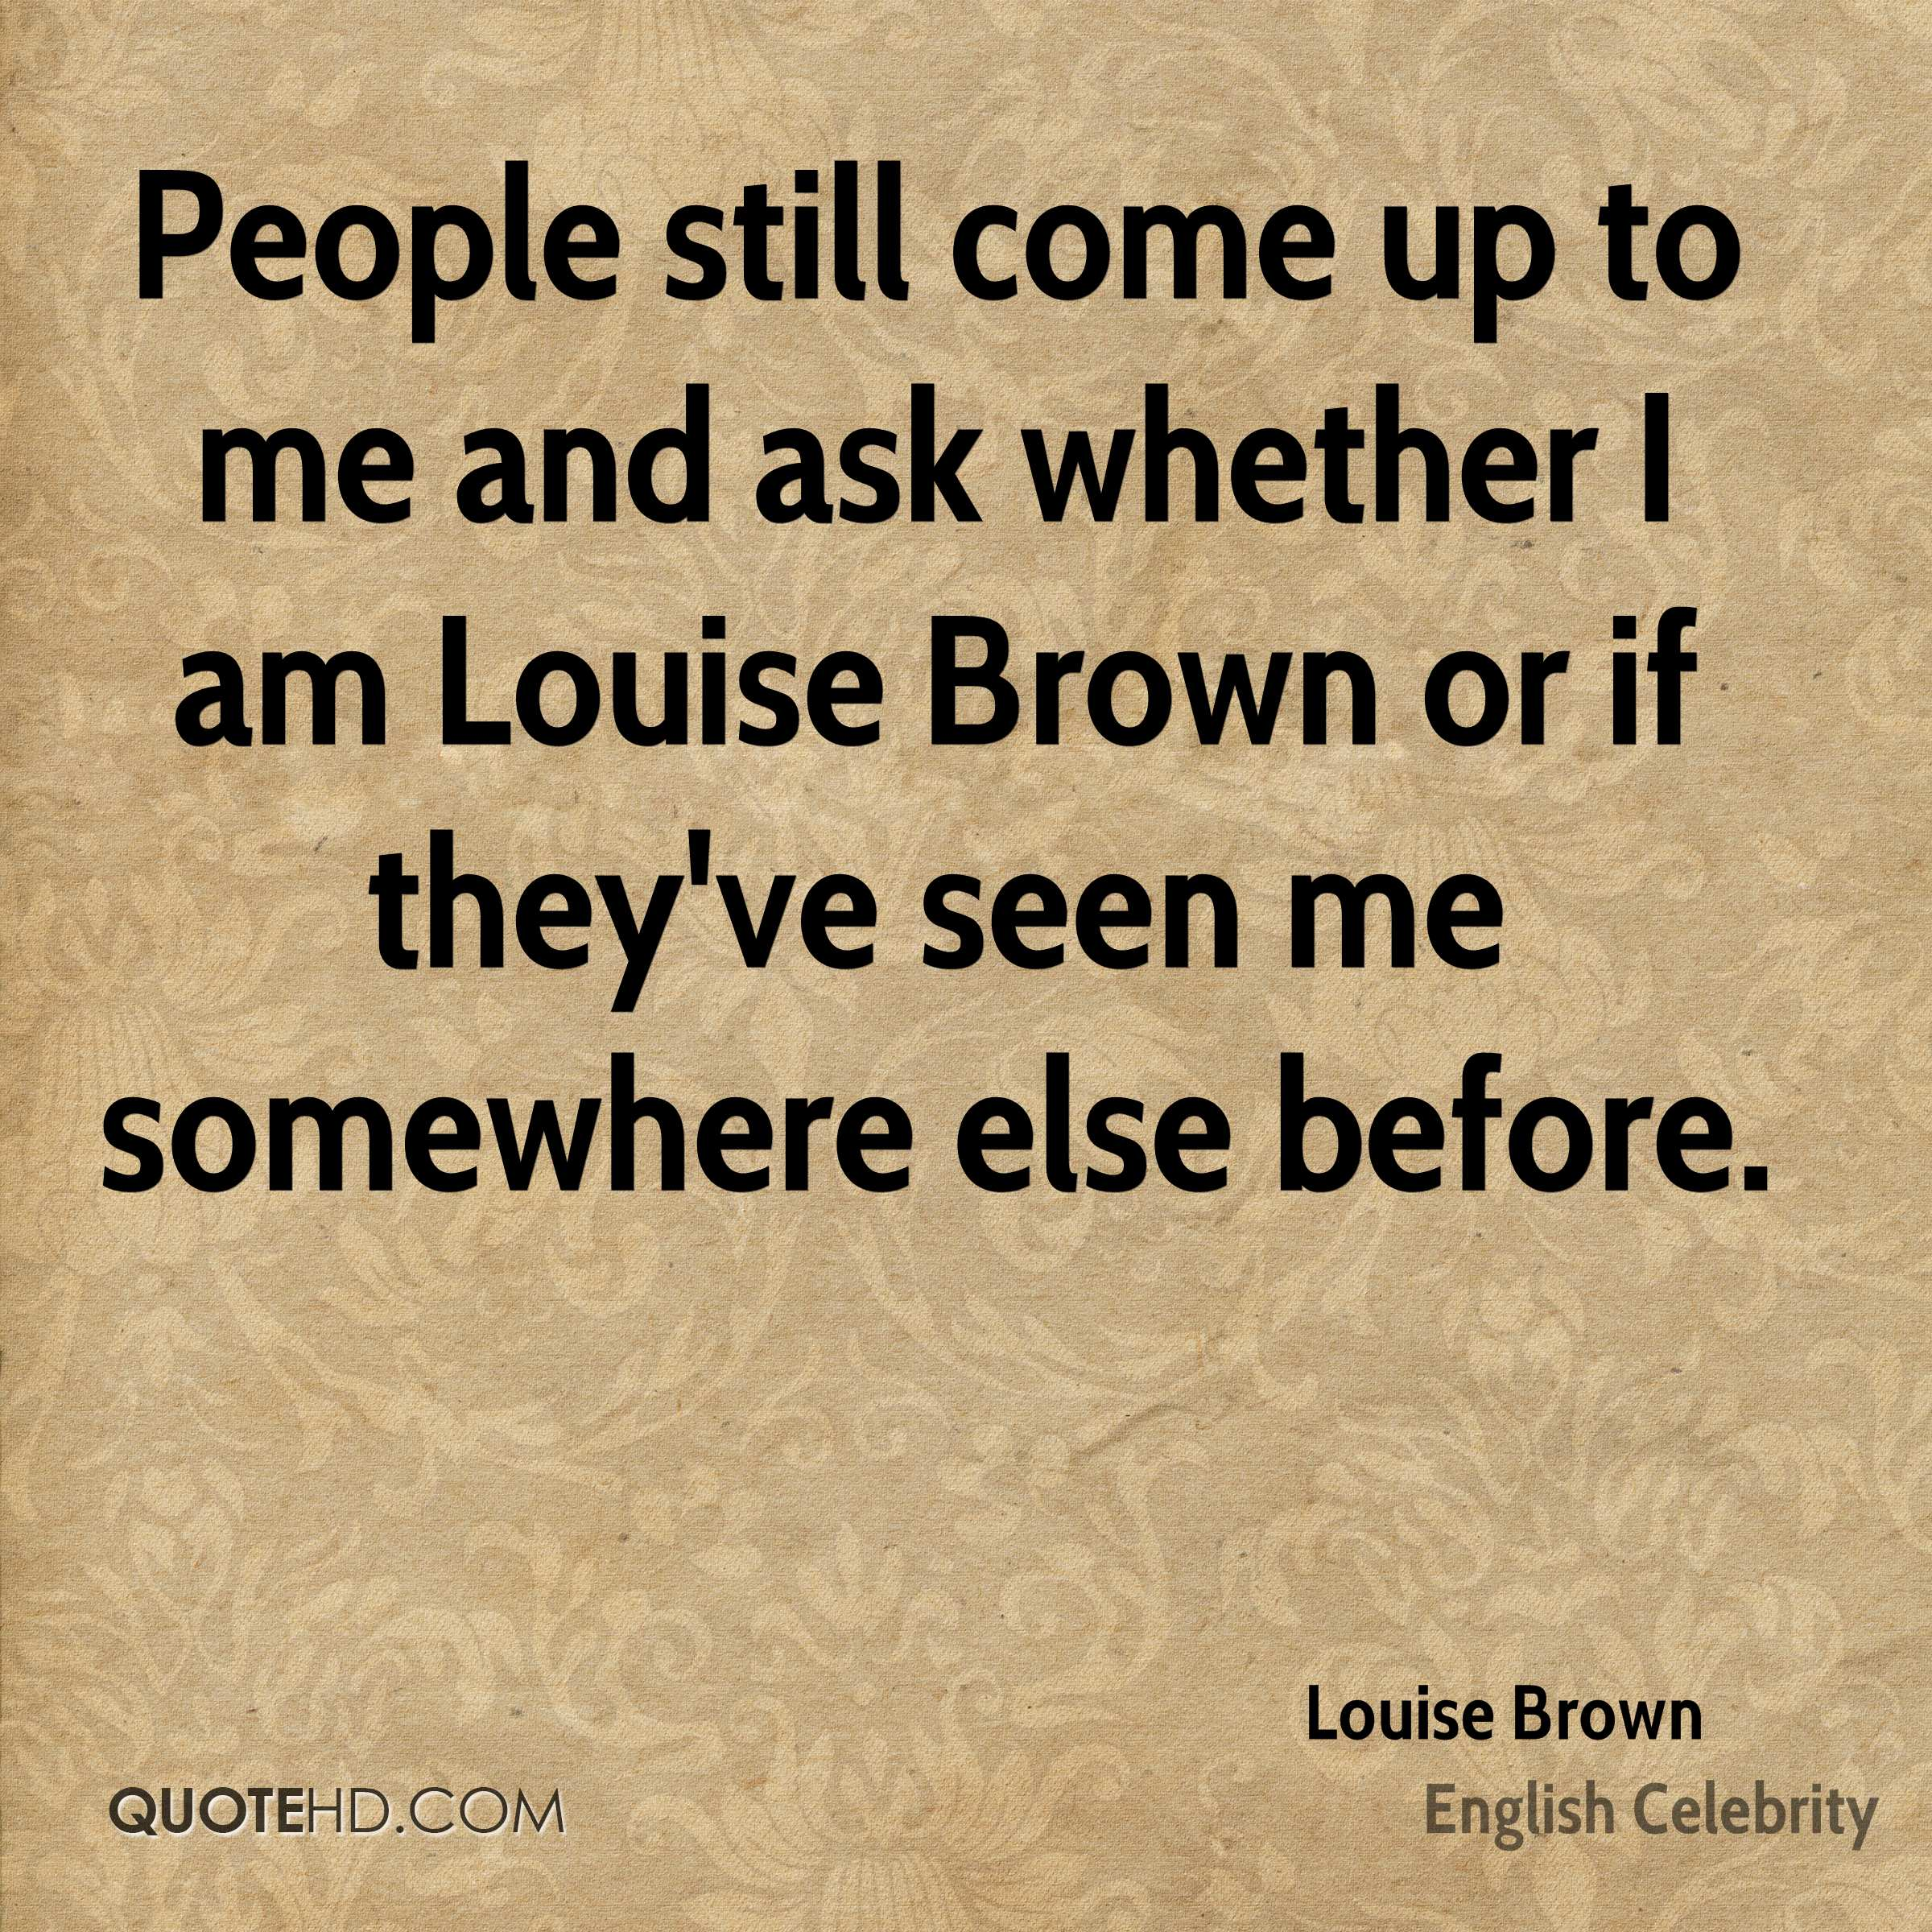 People still come up to me and ask whether I am Louise Brown or if they've seen me somewhere else before.